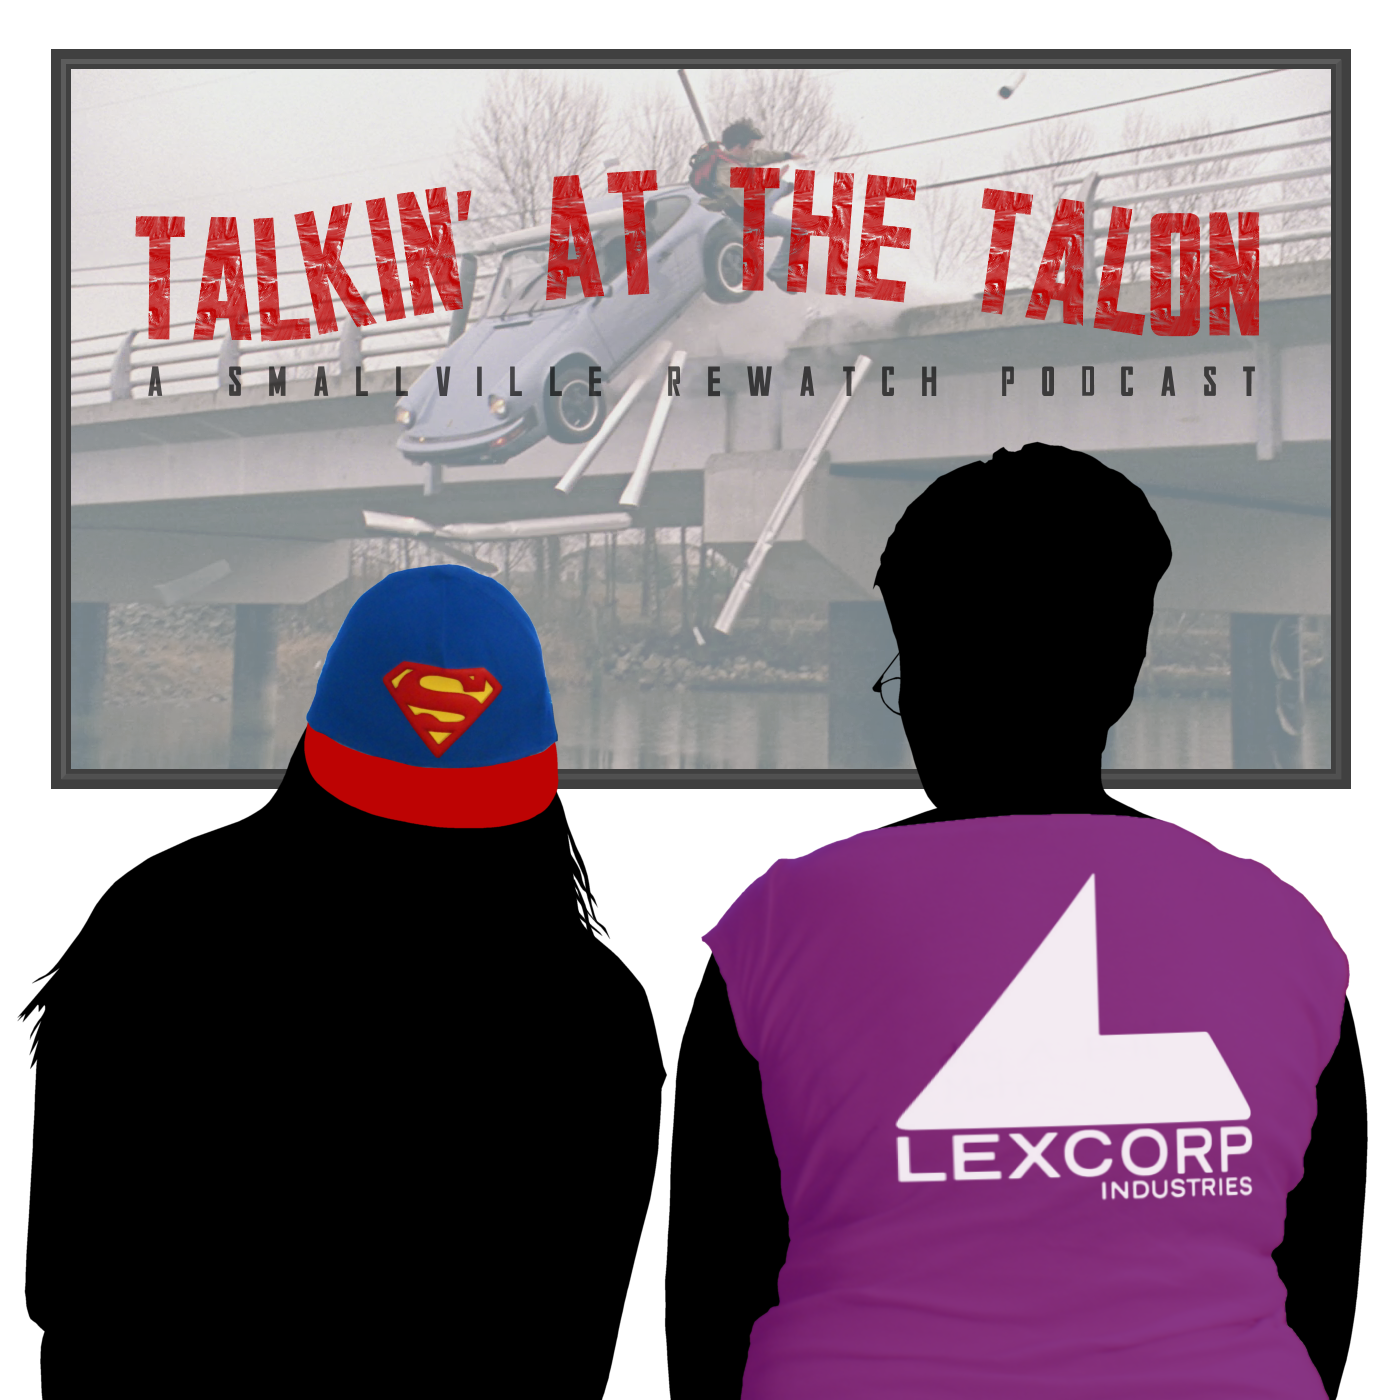 Talkin' at the Talon